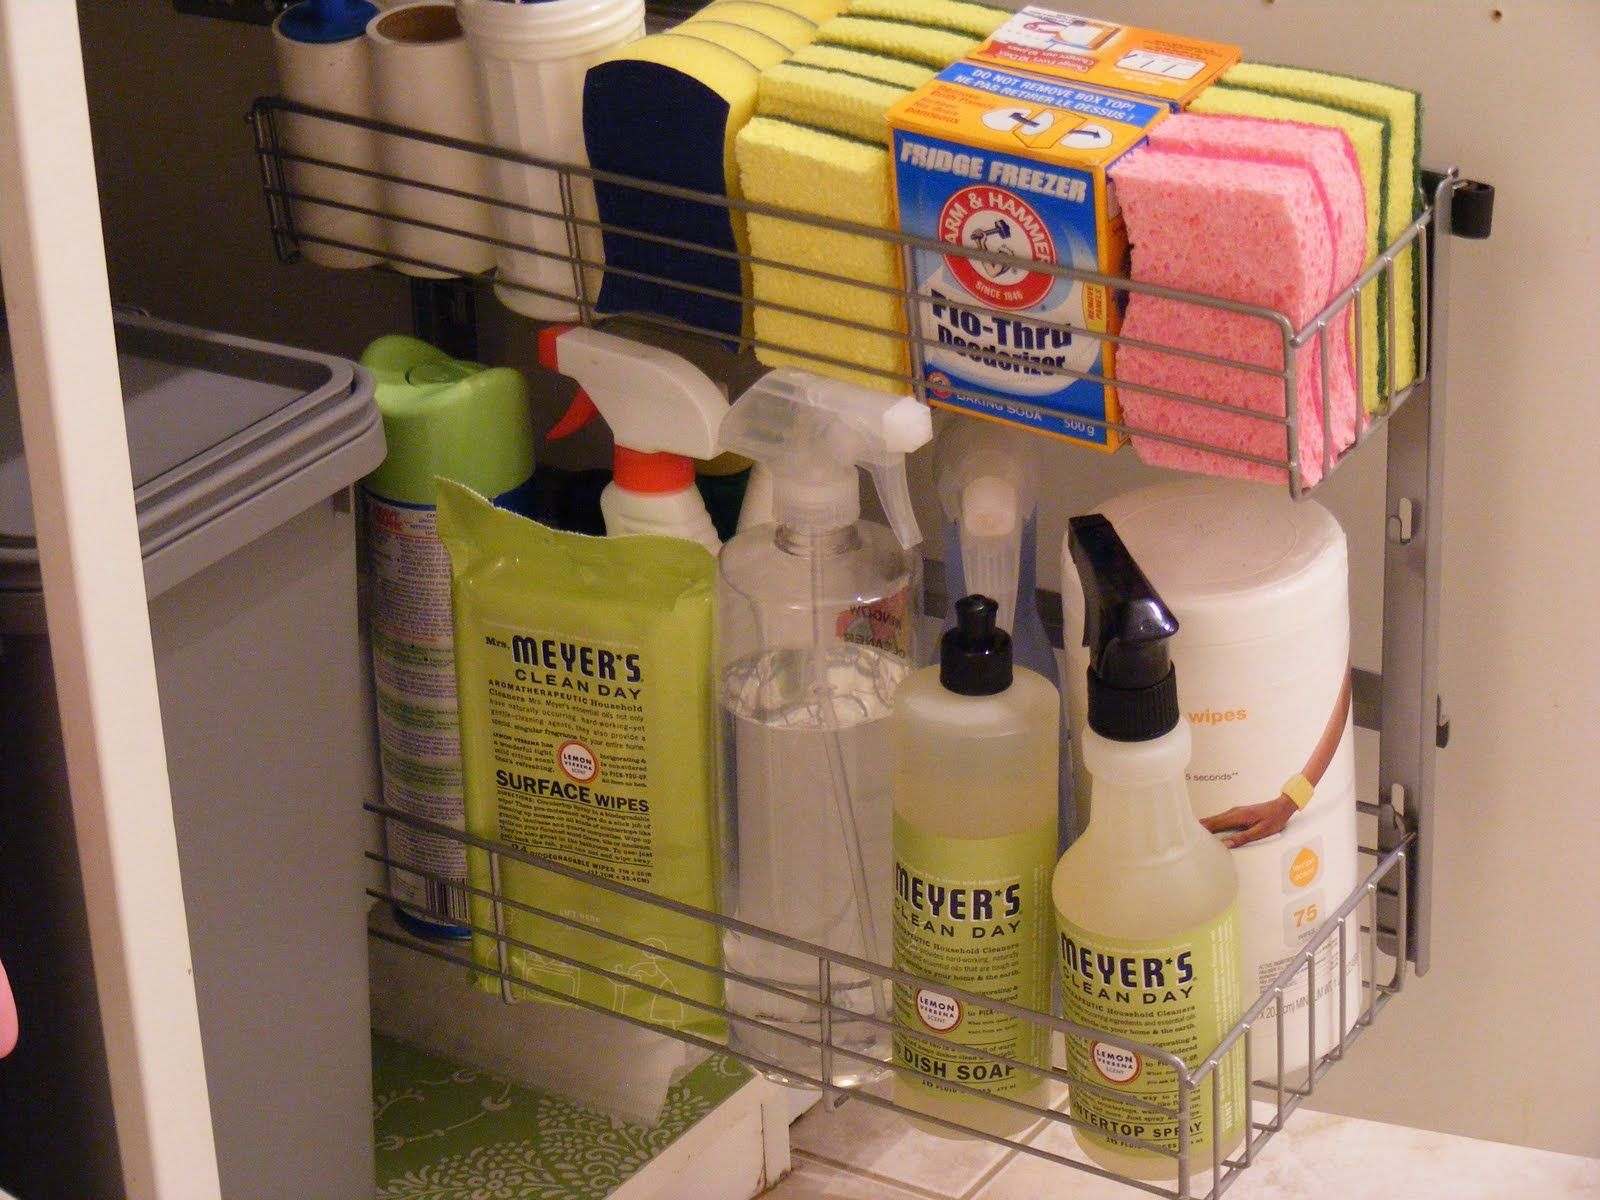 Kitchen Sink Organizer Ideas Kitchen Organization Wire Shelving Undersink Unit From Ikea's